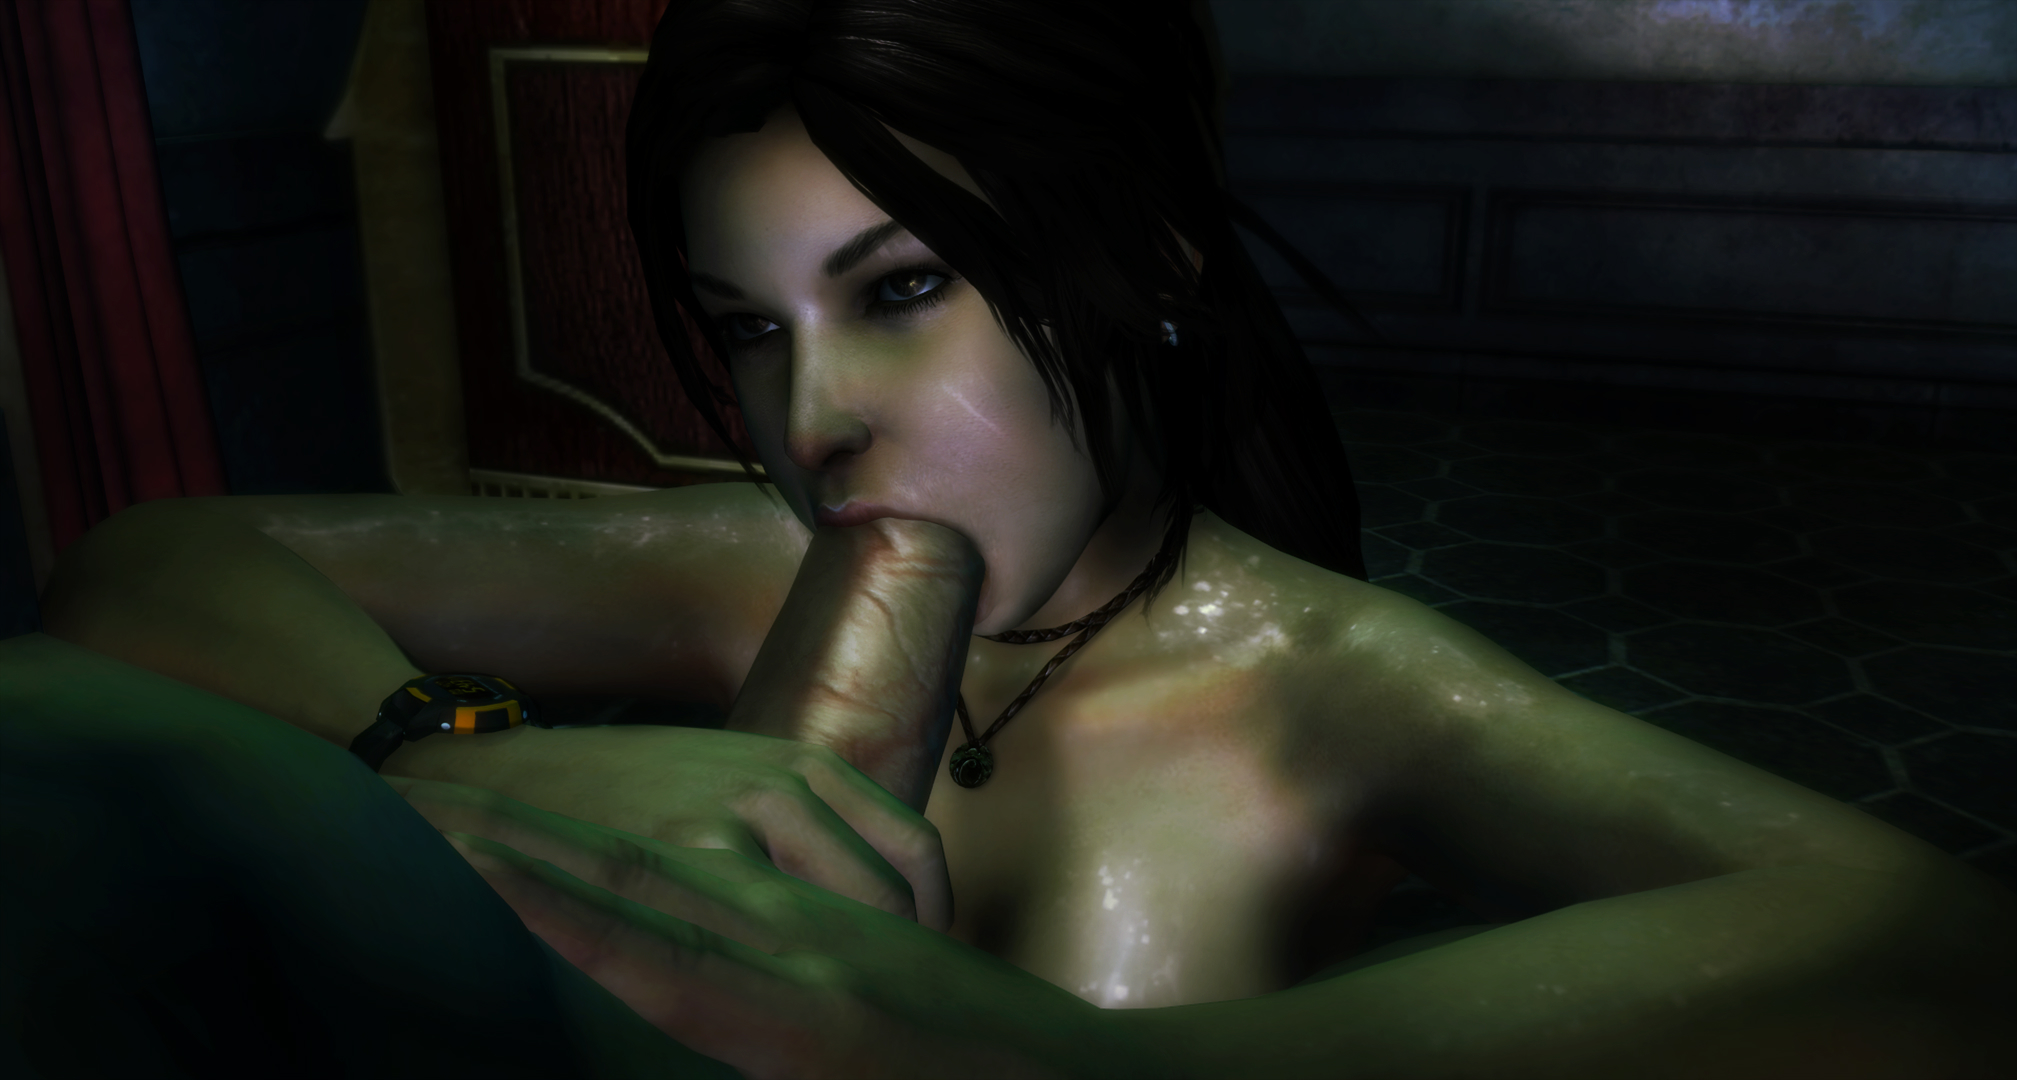 Lara croft of the underworld underground nude sex gallery